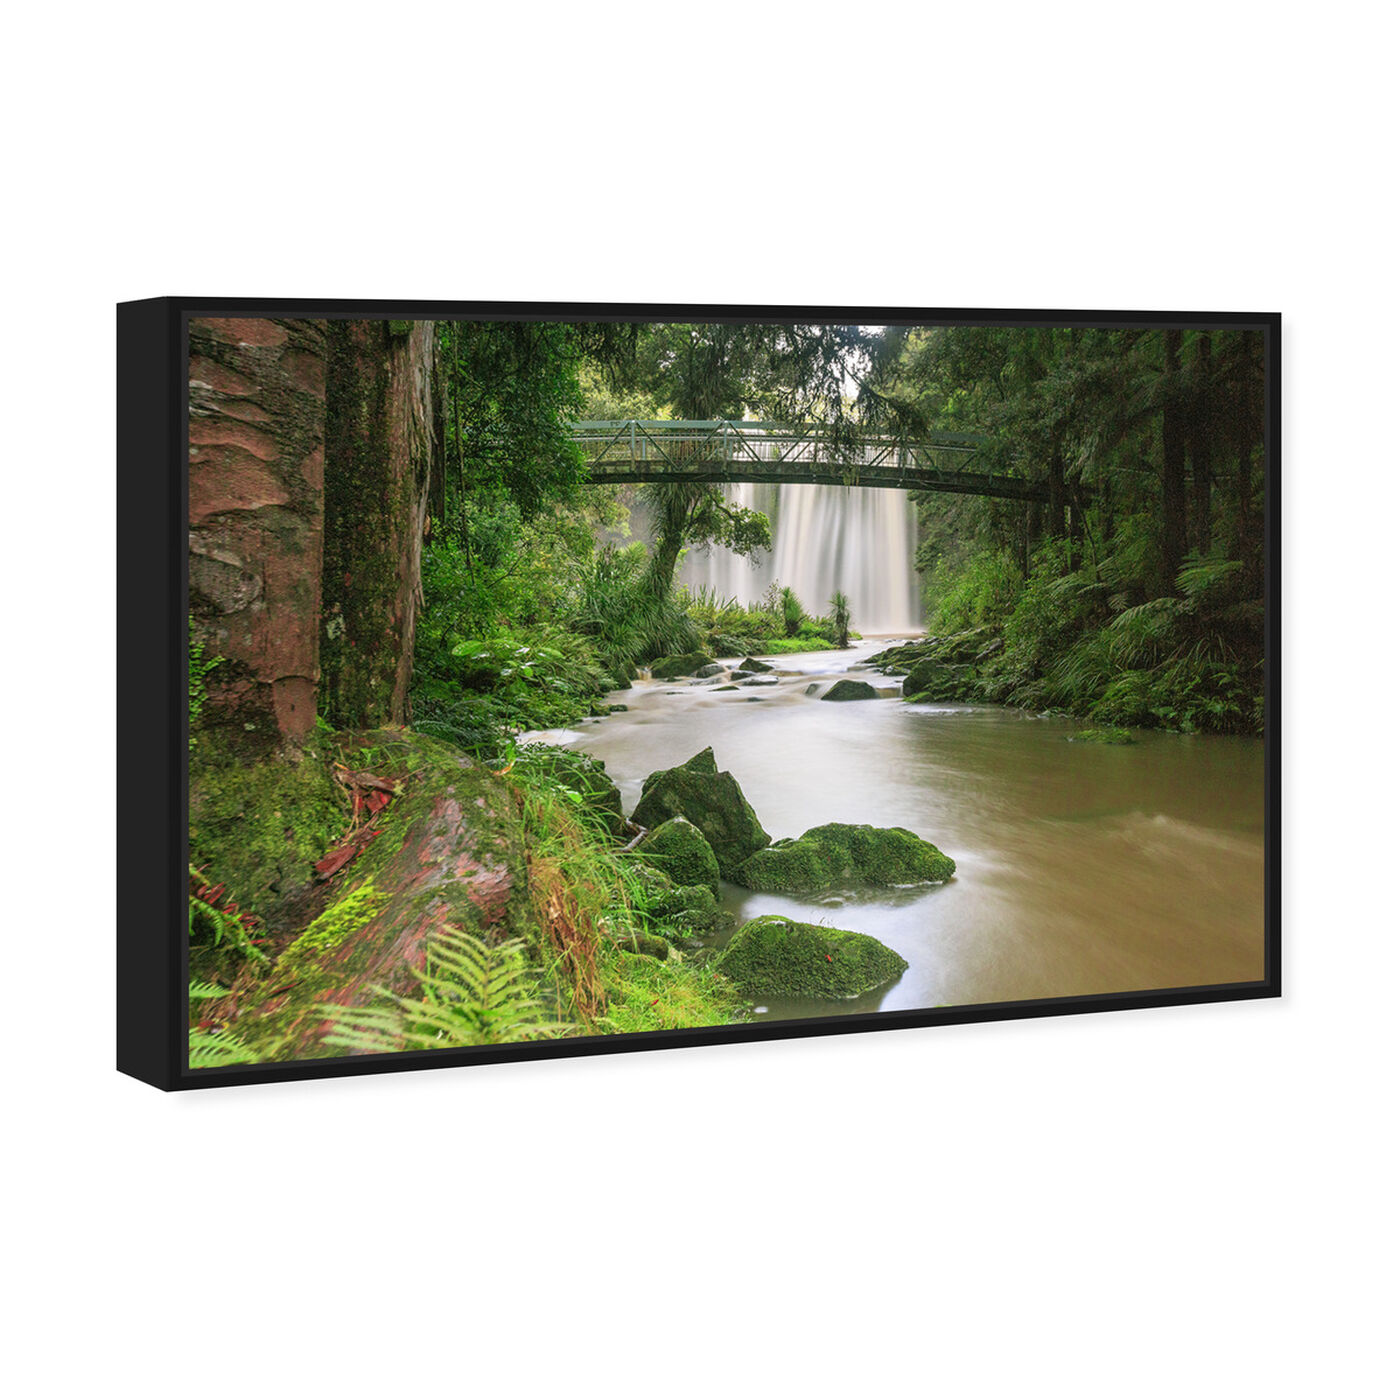 Angled view of Curro Cardenal - Rainforest III featuring nature and landscape and nature art.